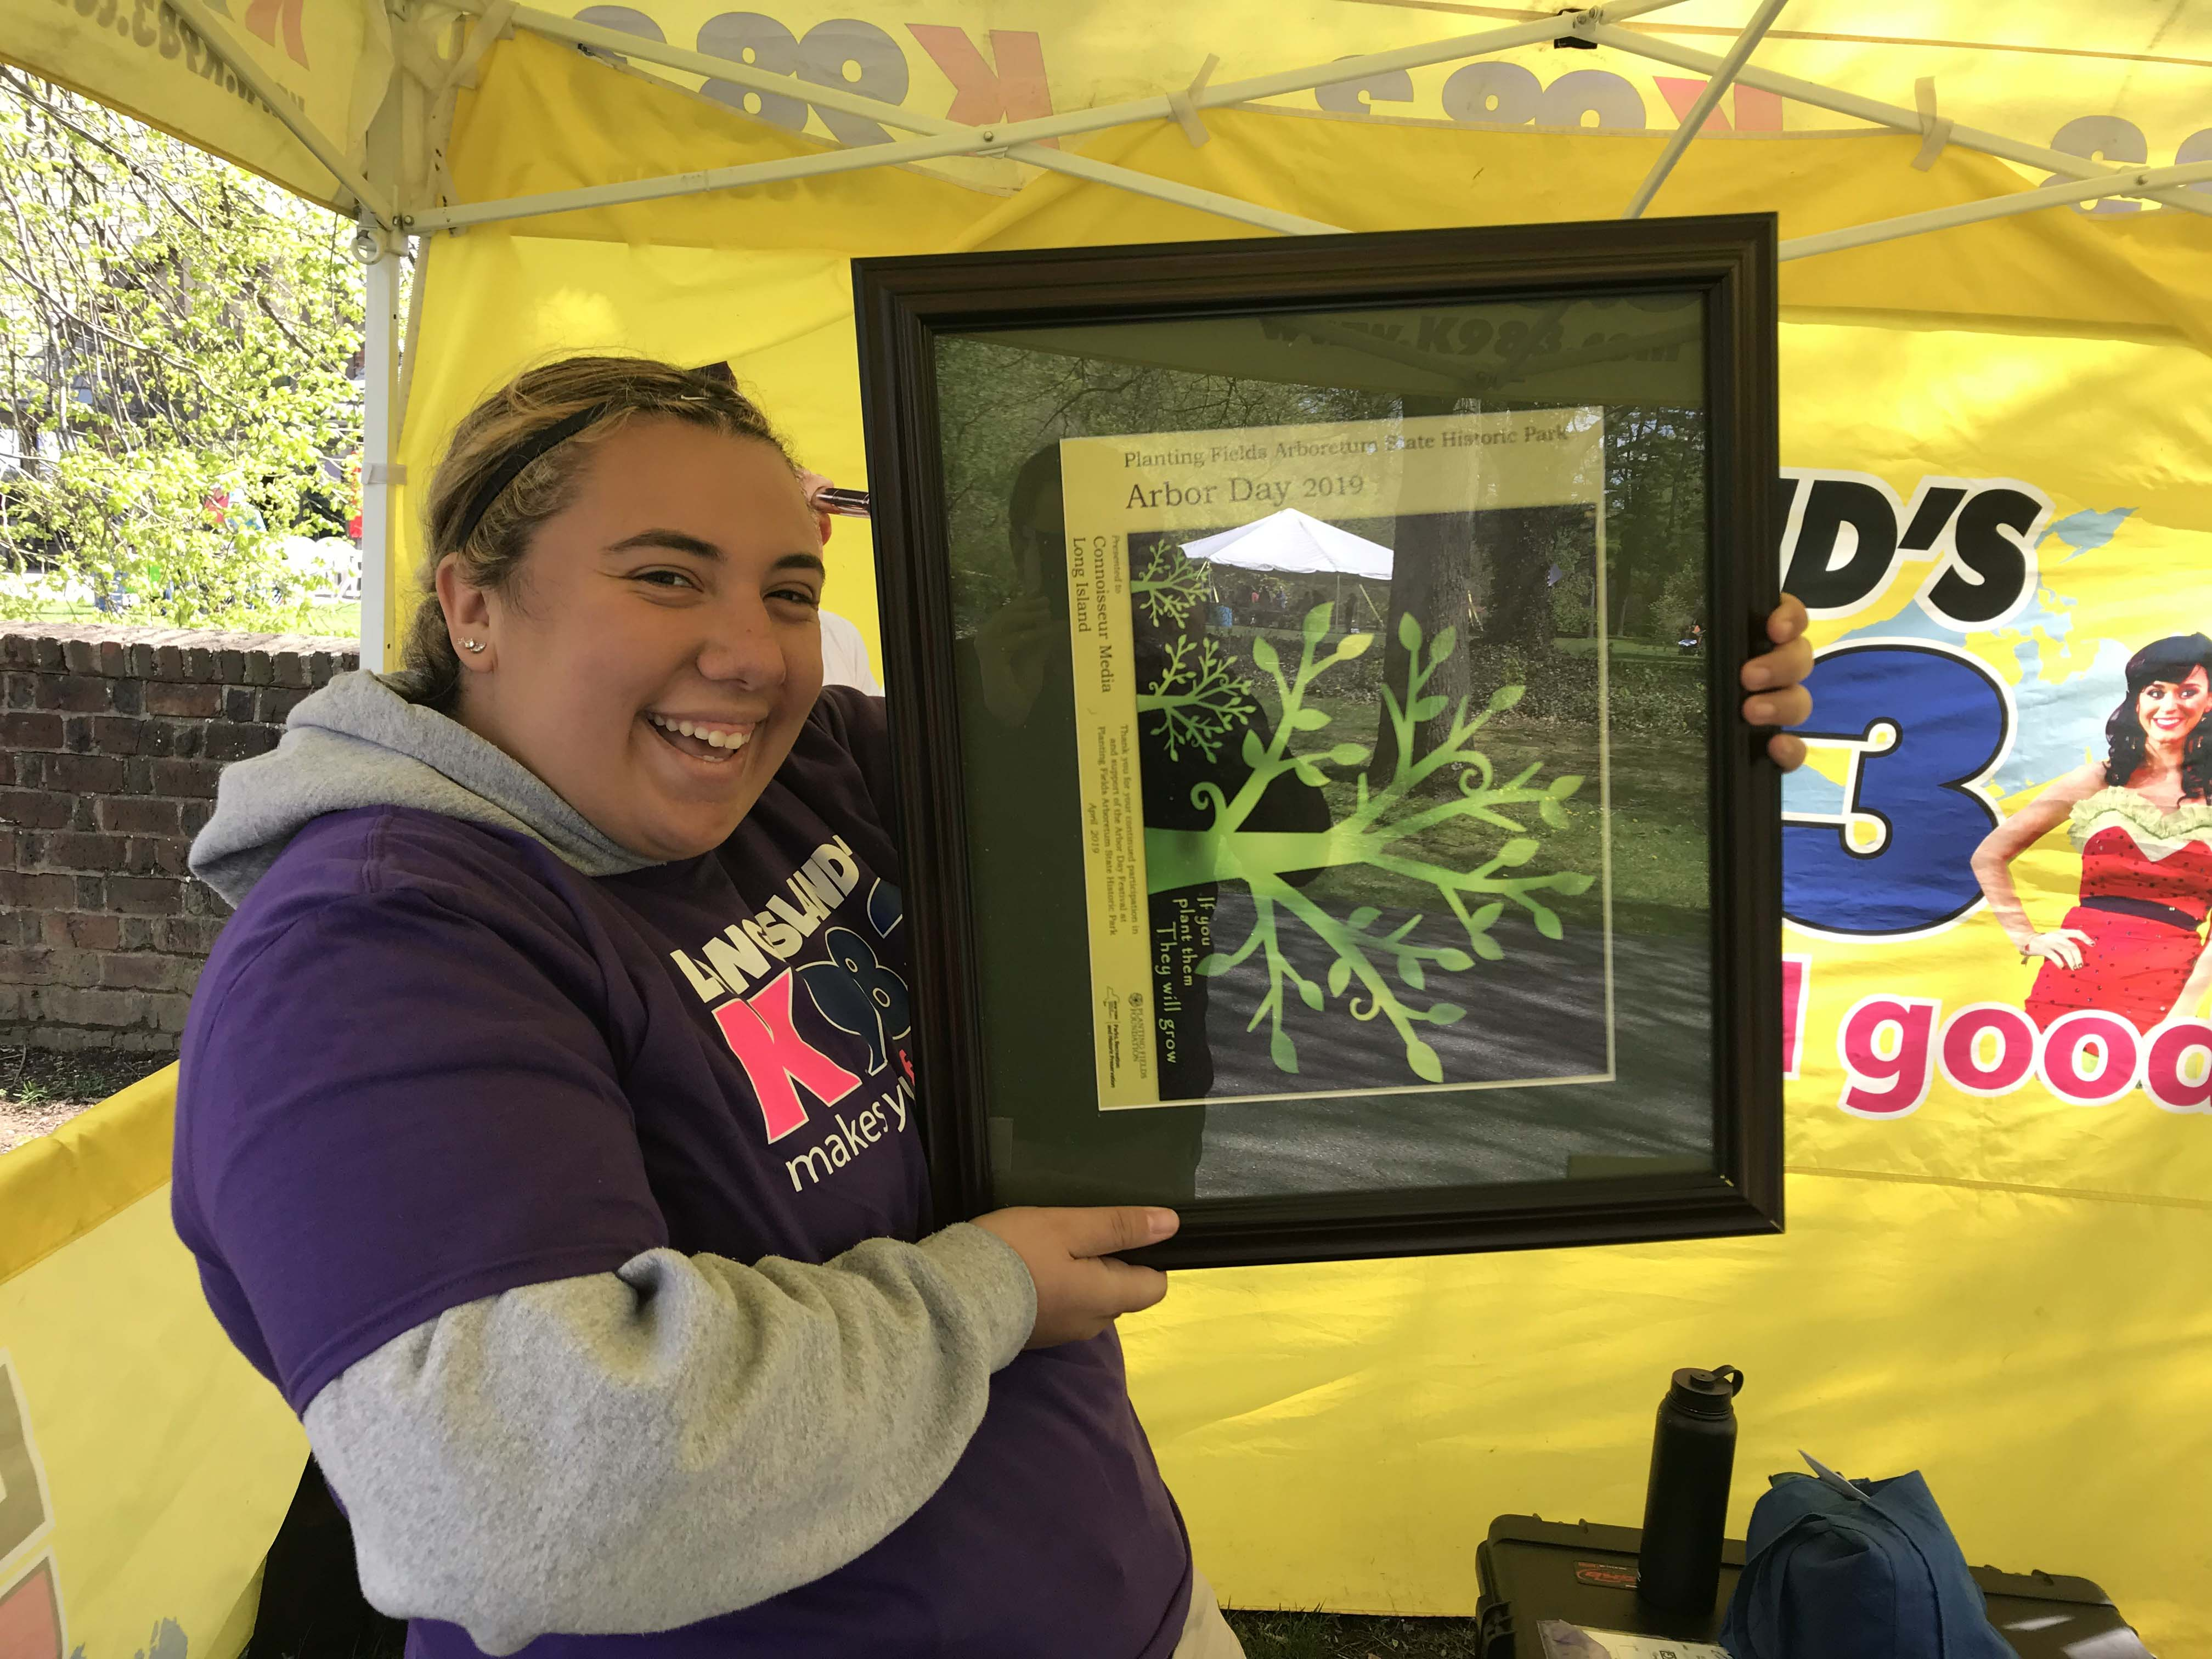 K98.3 @ The Arbor Day Family Festival